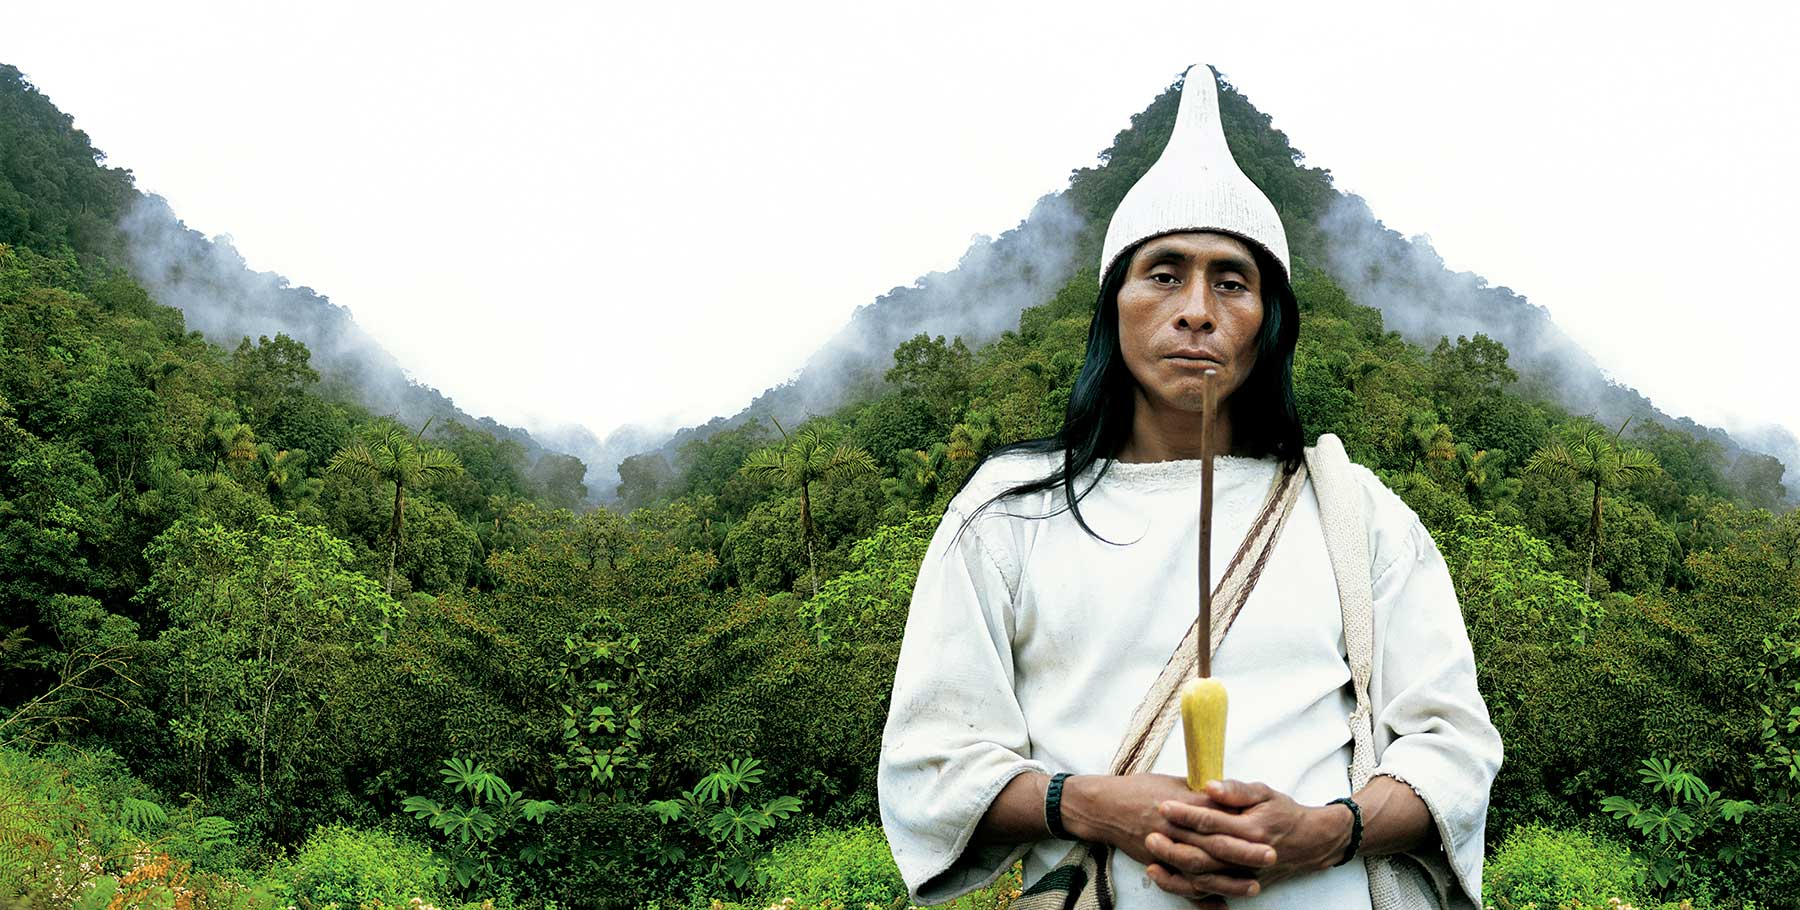 indigenous man in front of forested mountains